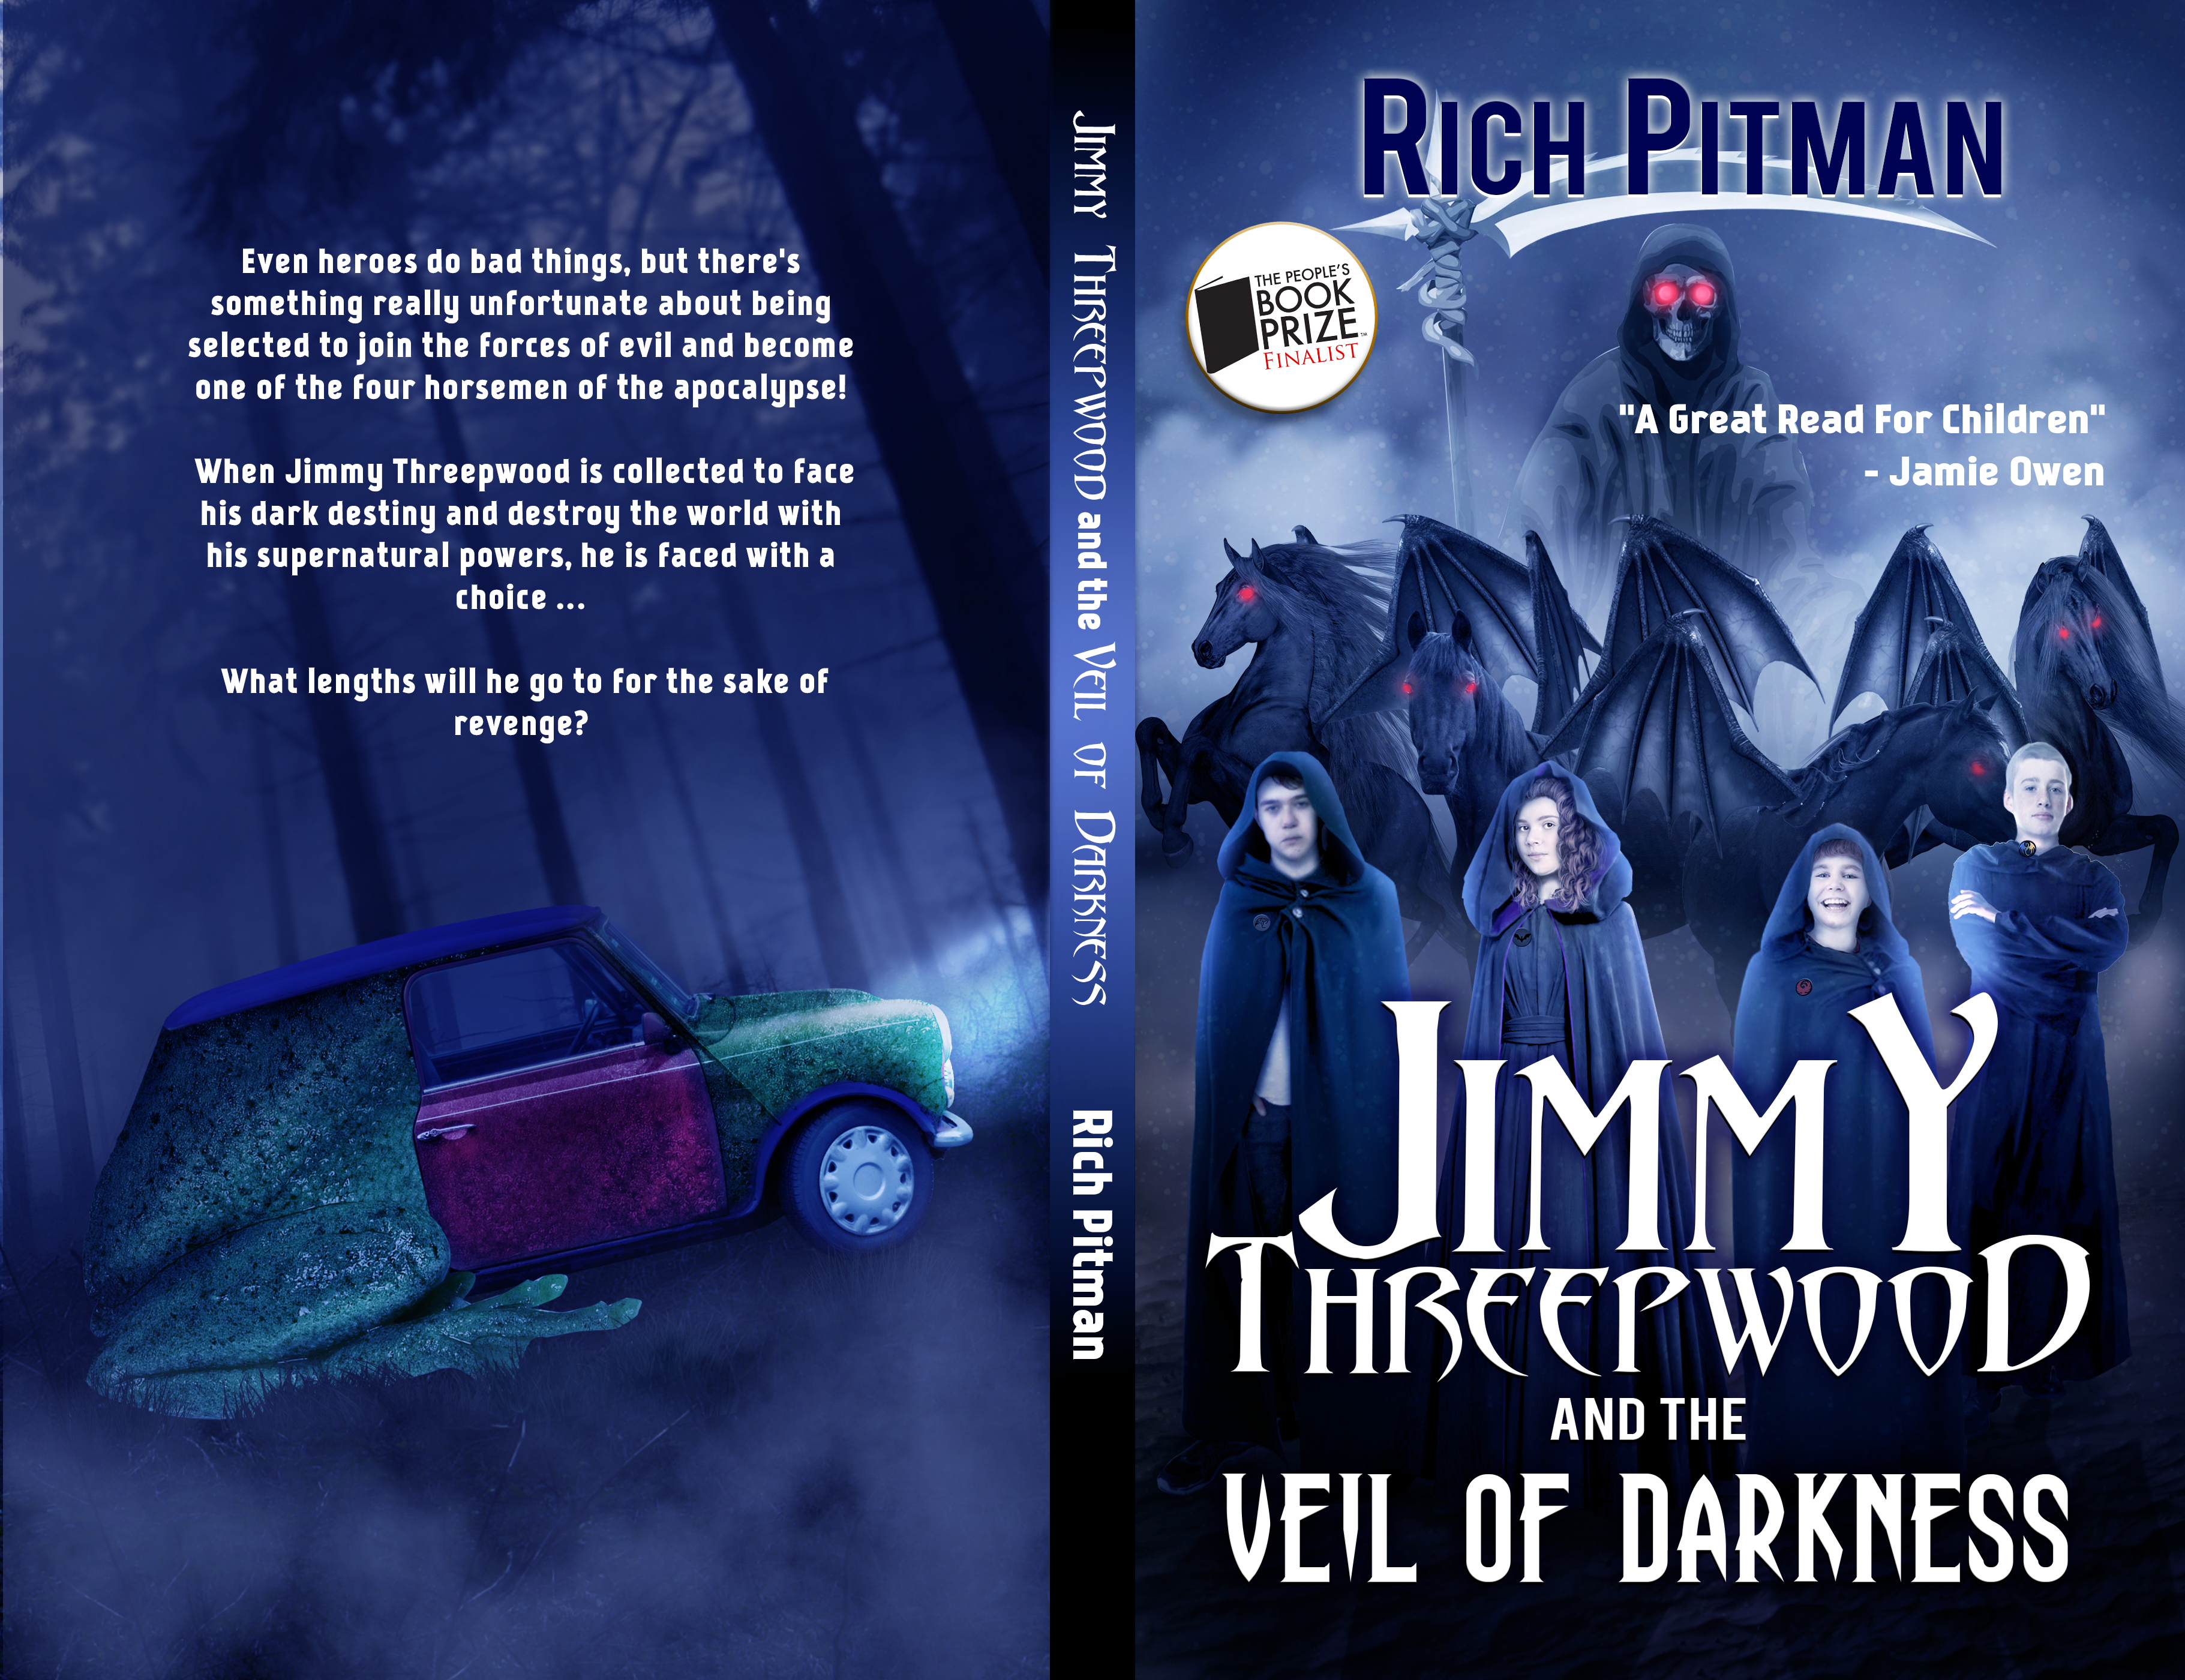 Jimmy Threepwood & the Veil of Darkness Wrap